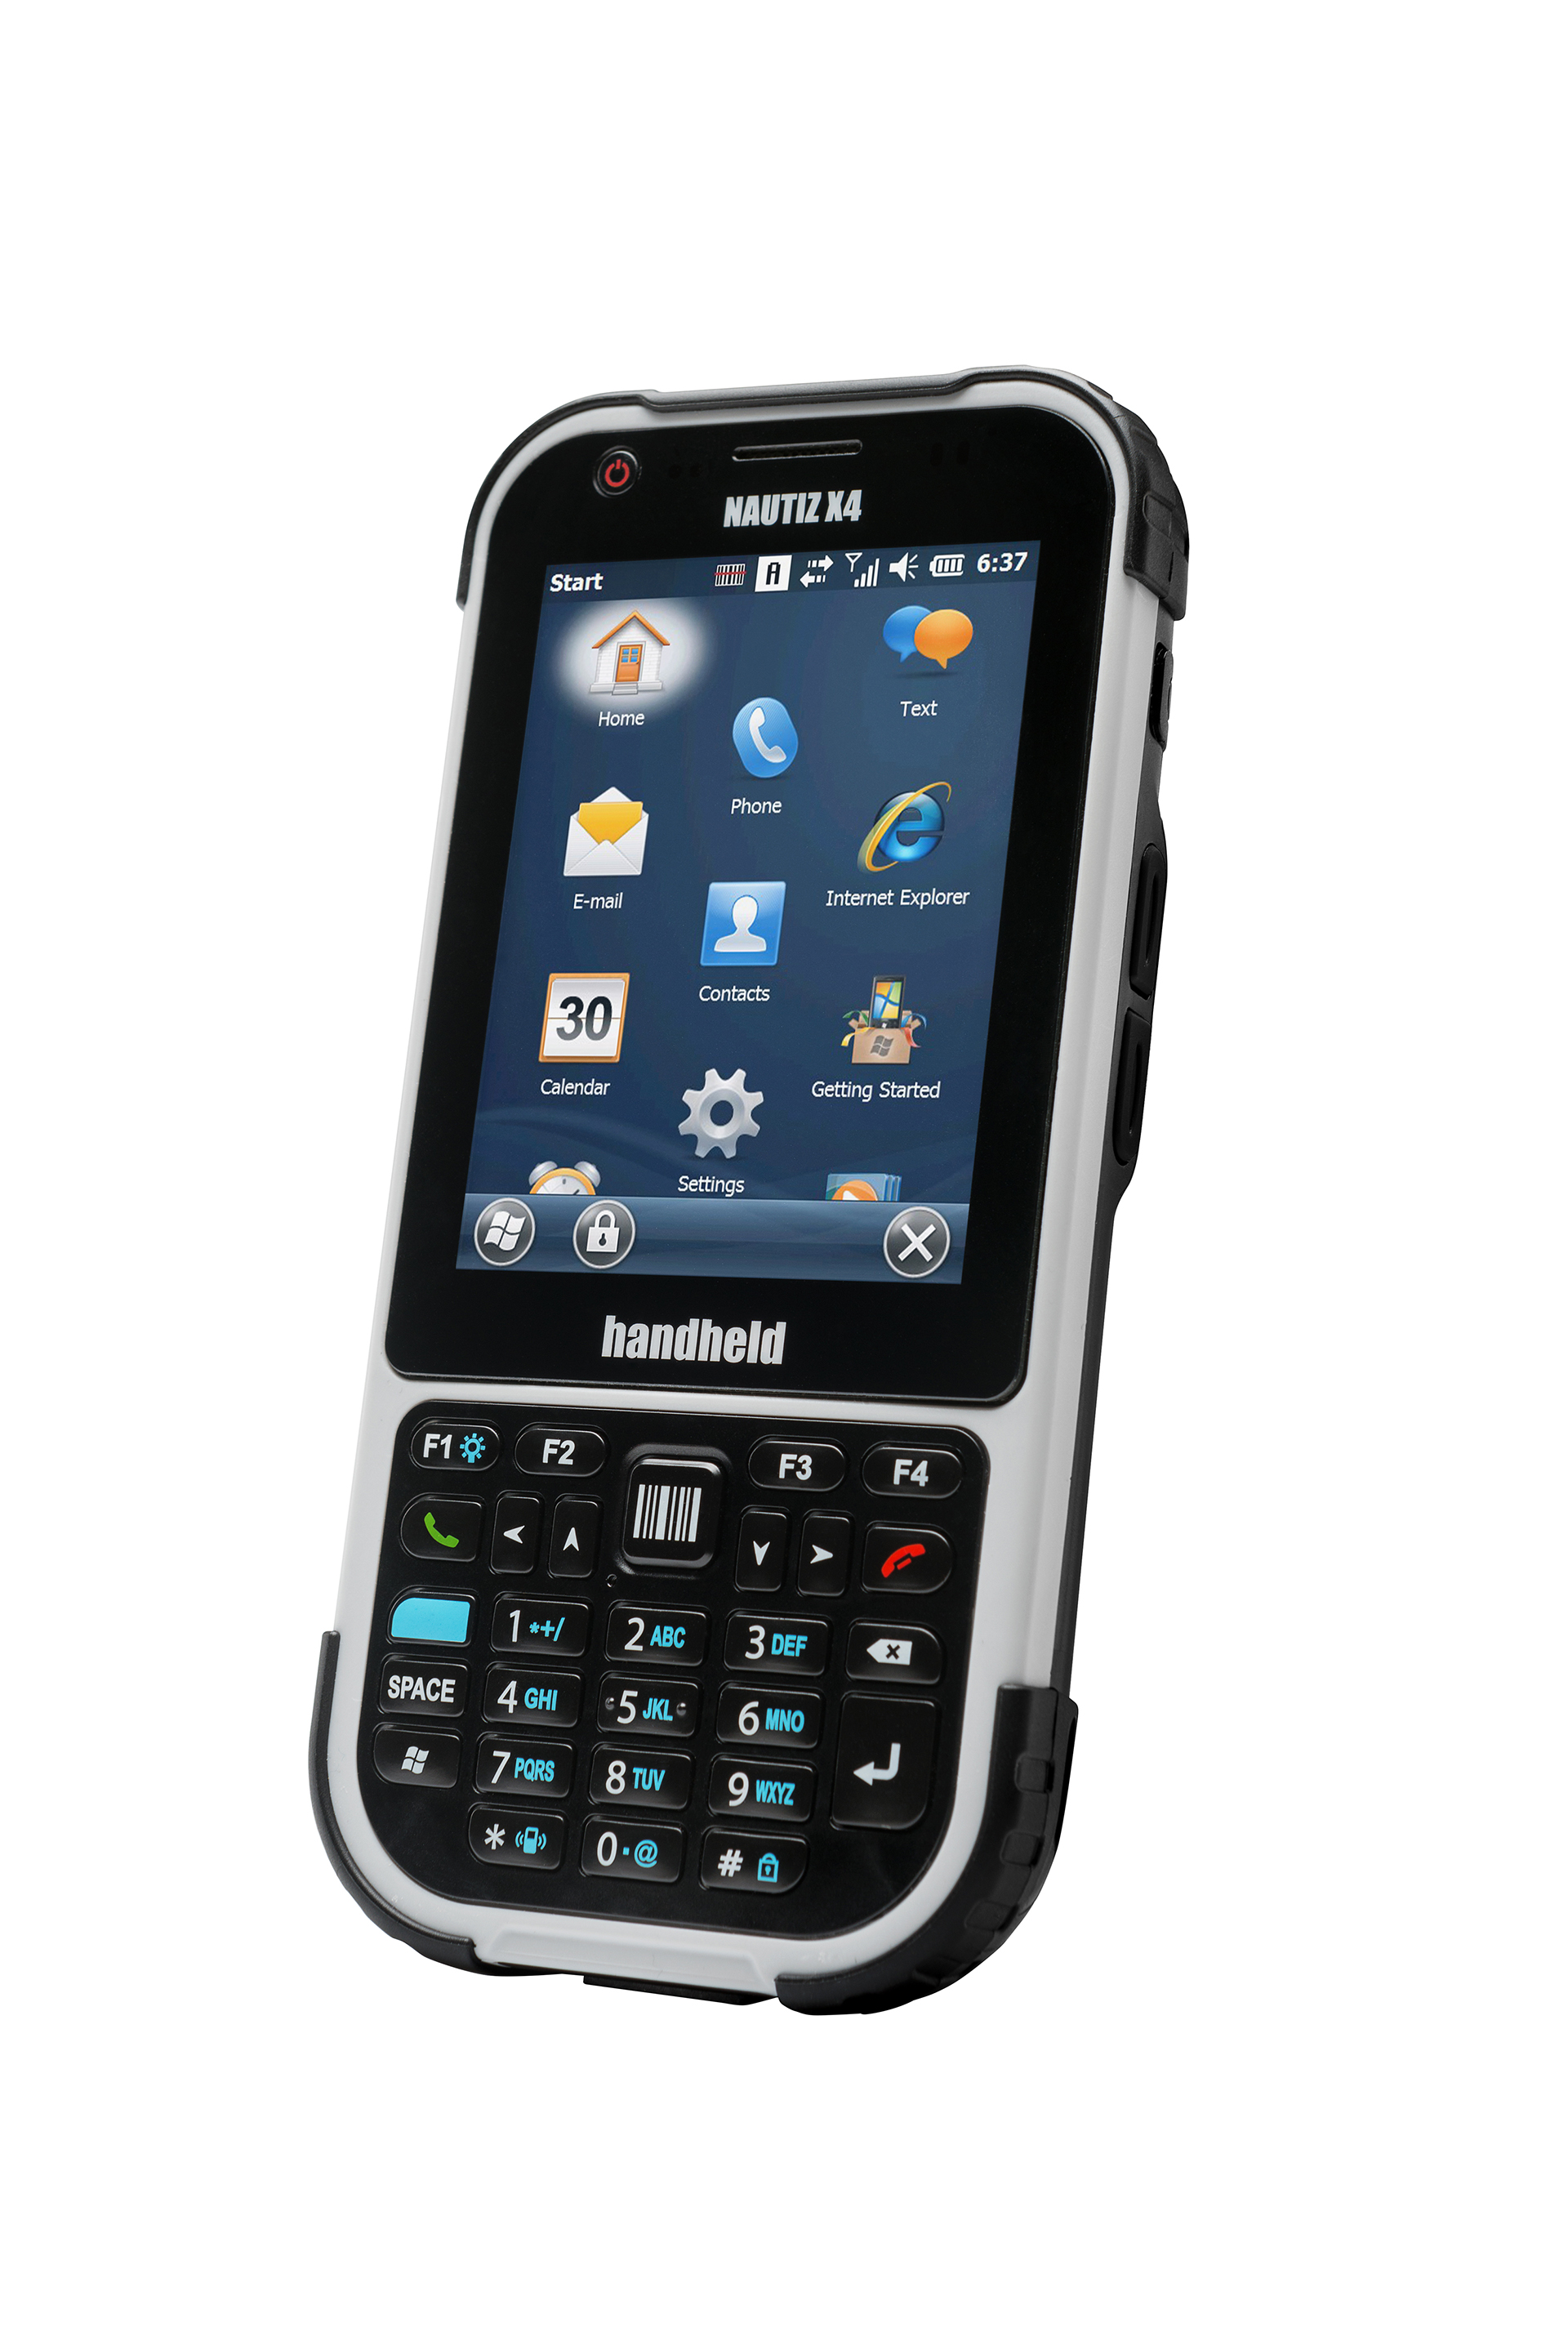 Nautiz-X4-handheld-rugged-facing-left.jpg